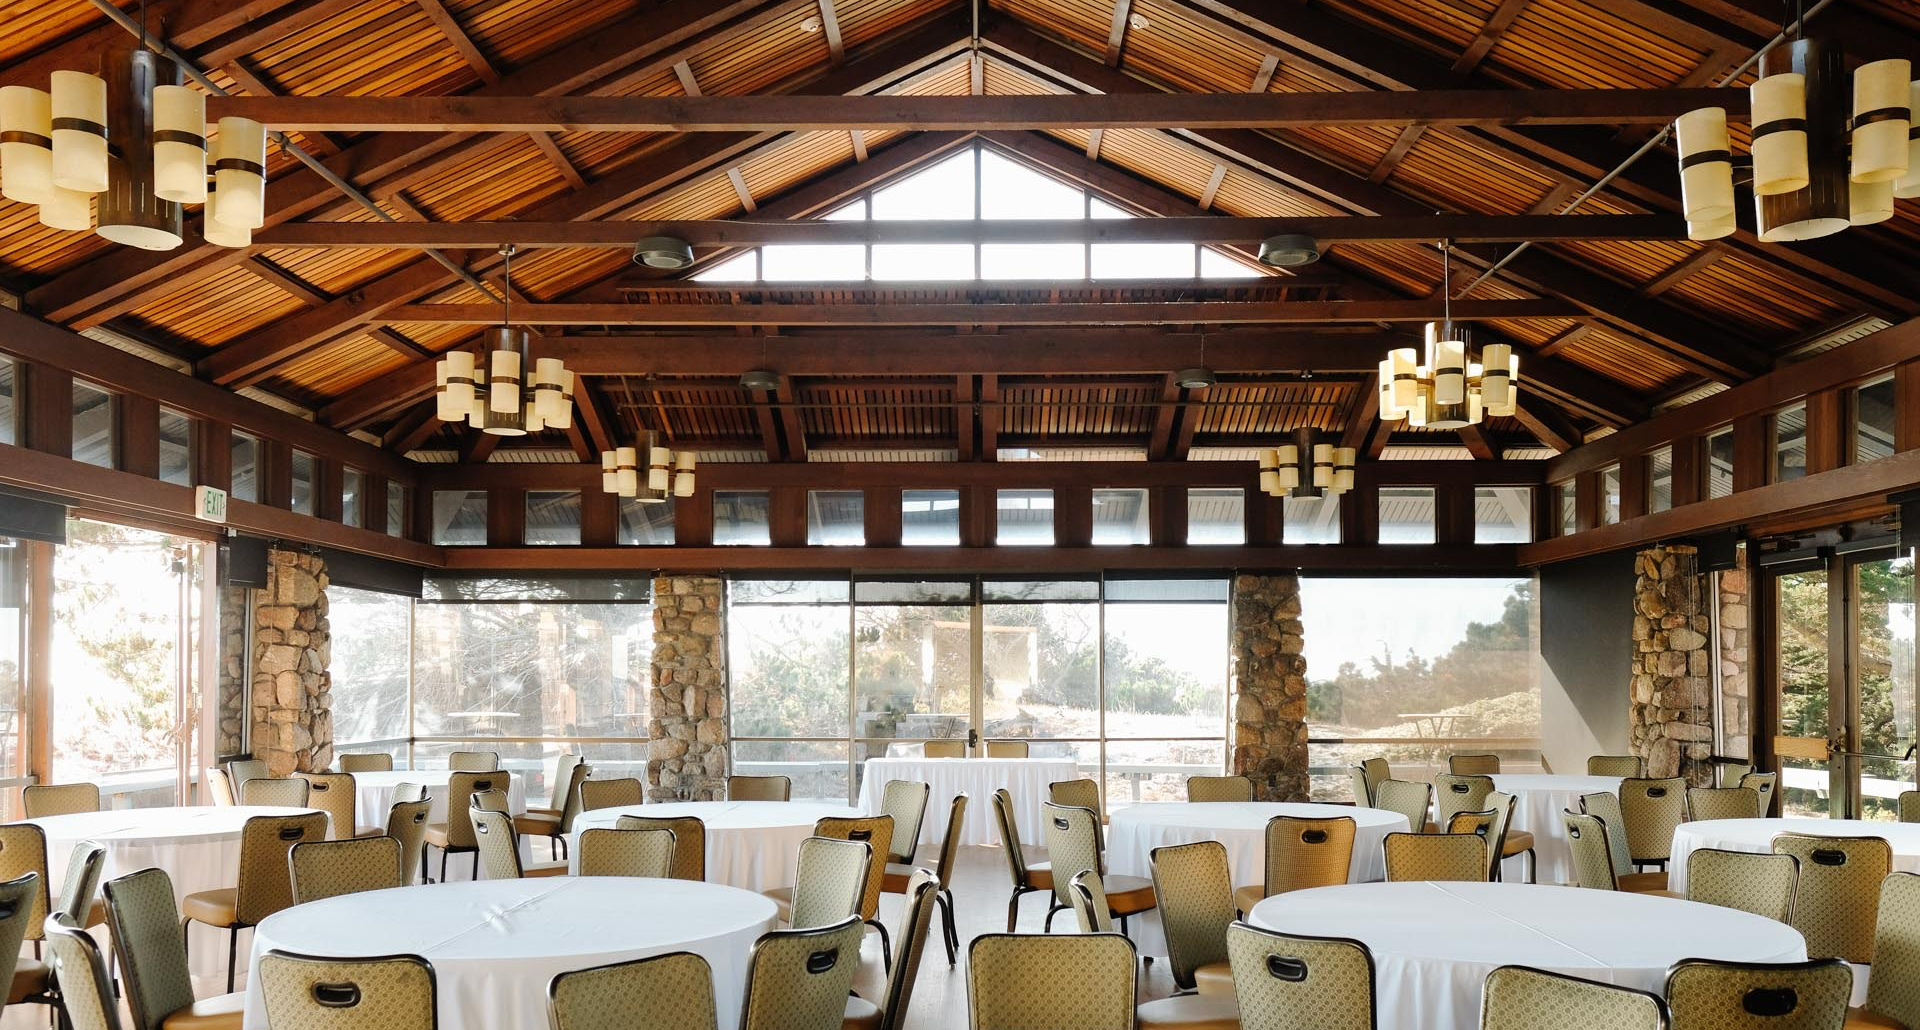 Best Things to Do at Asilomar State Beach and Conference Grounds